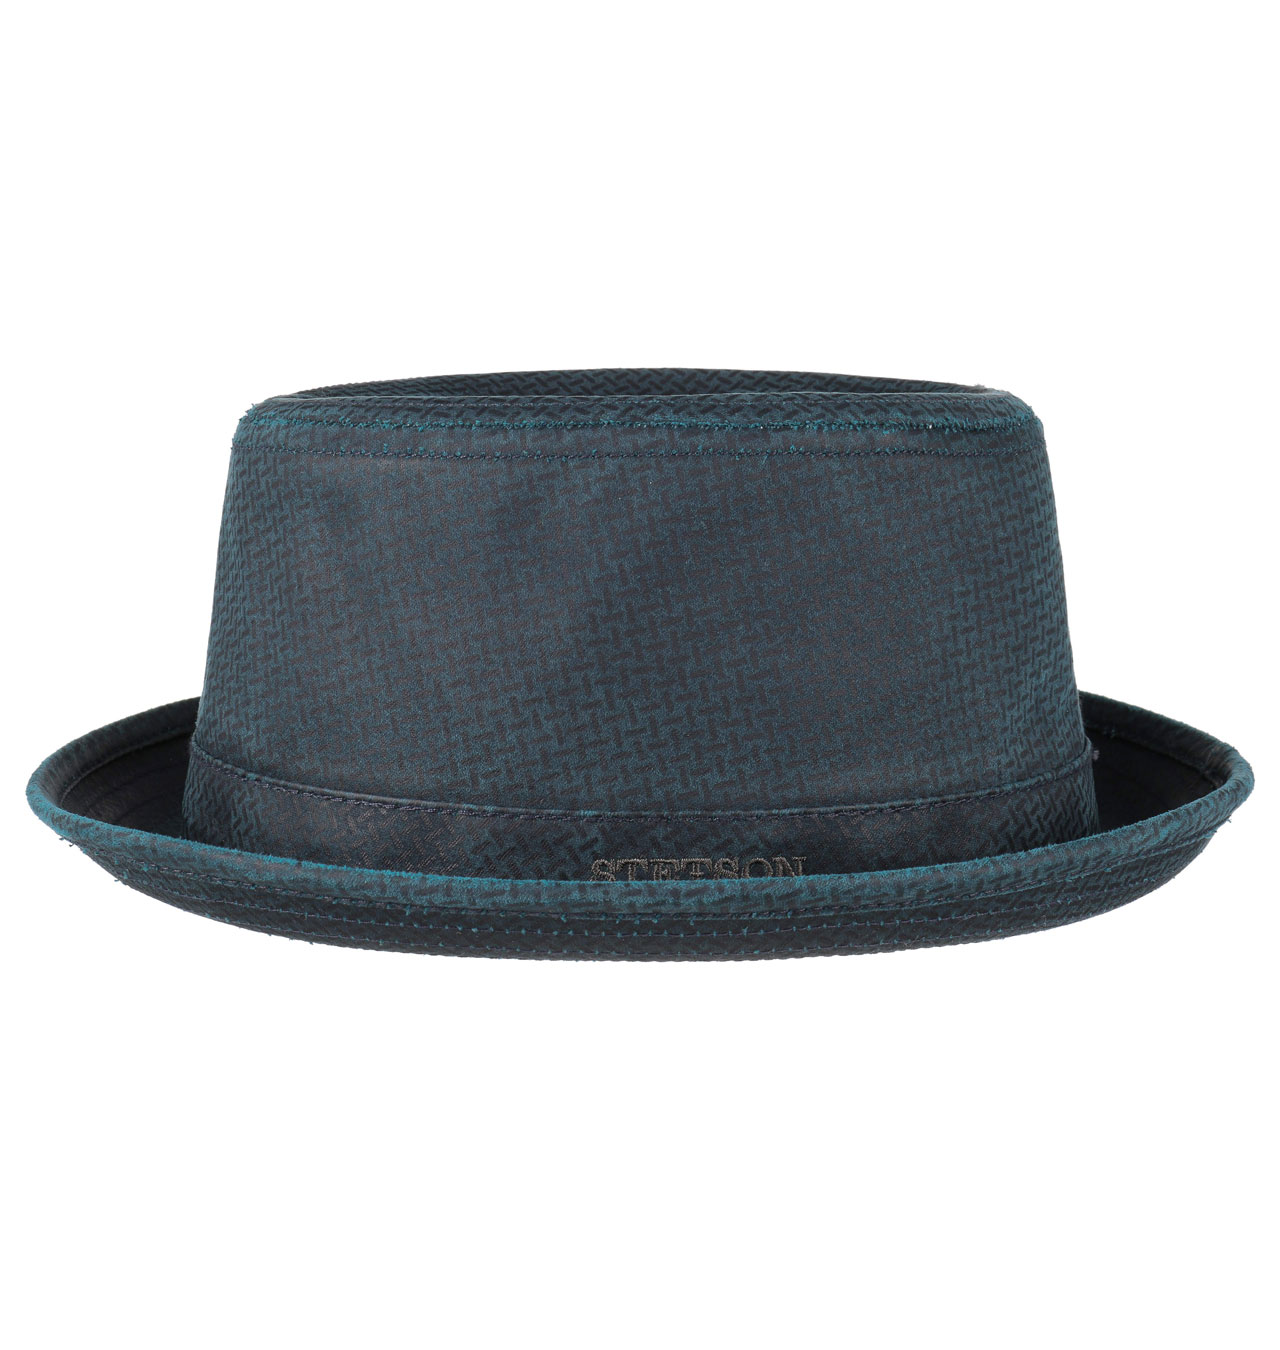 Stetson---Embossed-Odenton-Pork-Pie-Hat---Petrol-Blue-1.jpg 6e1bb06e45f